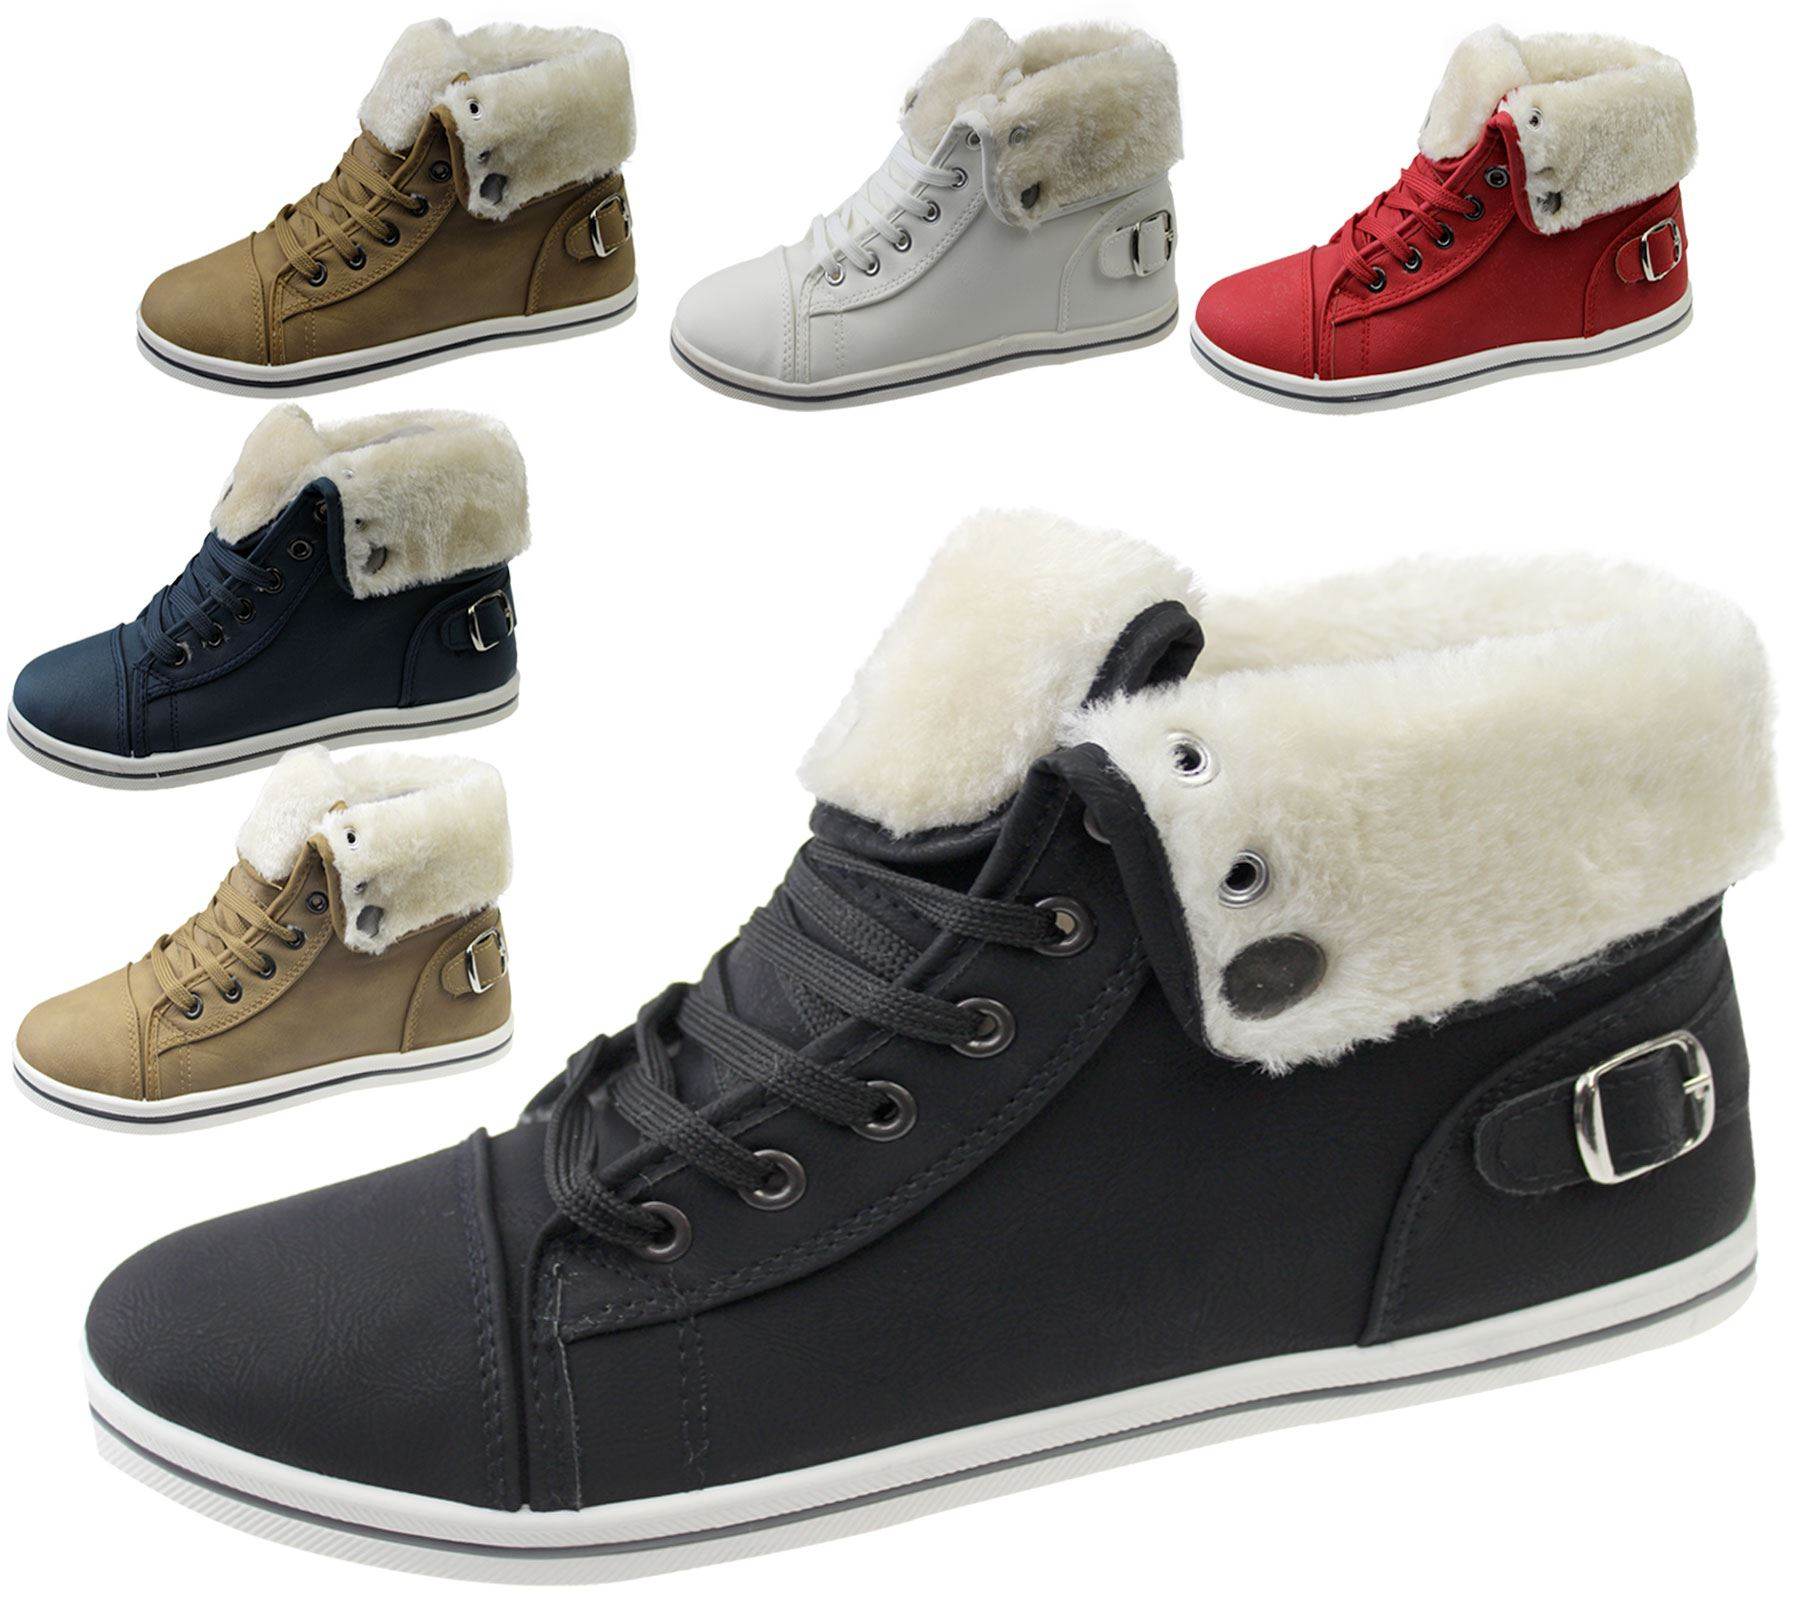 Girls-Boots-Womens-Warm-Lined-High-Top-Ankle-Trainer-Ladies-Winter-Shoes-Size miniatura 104